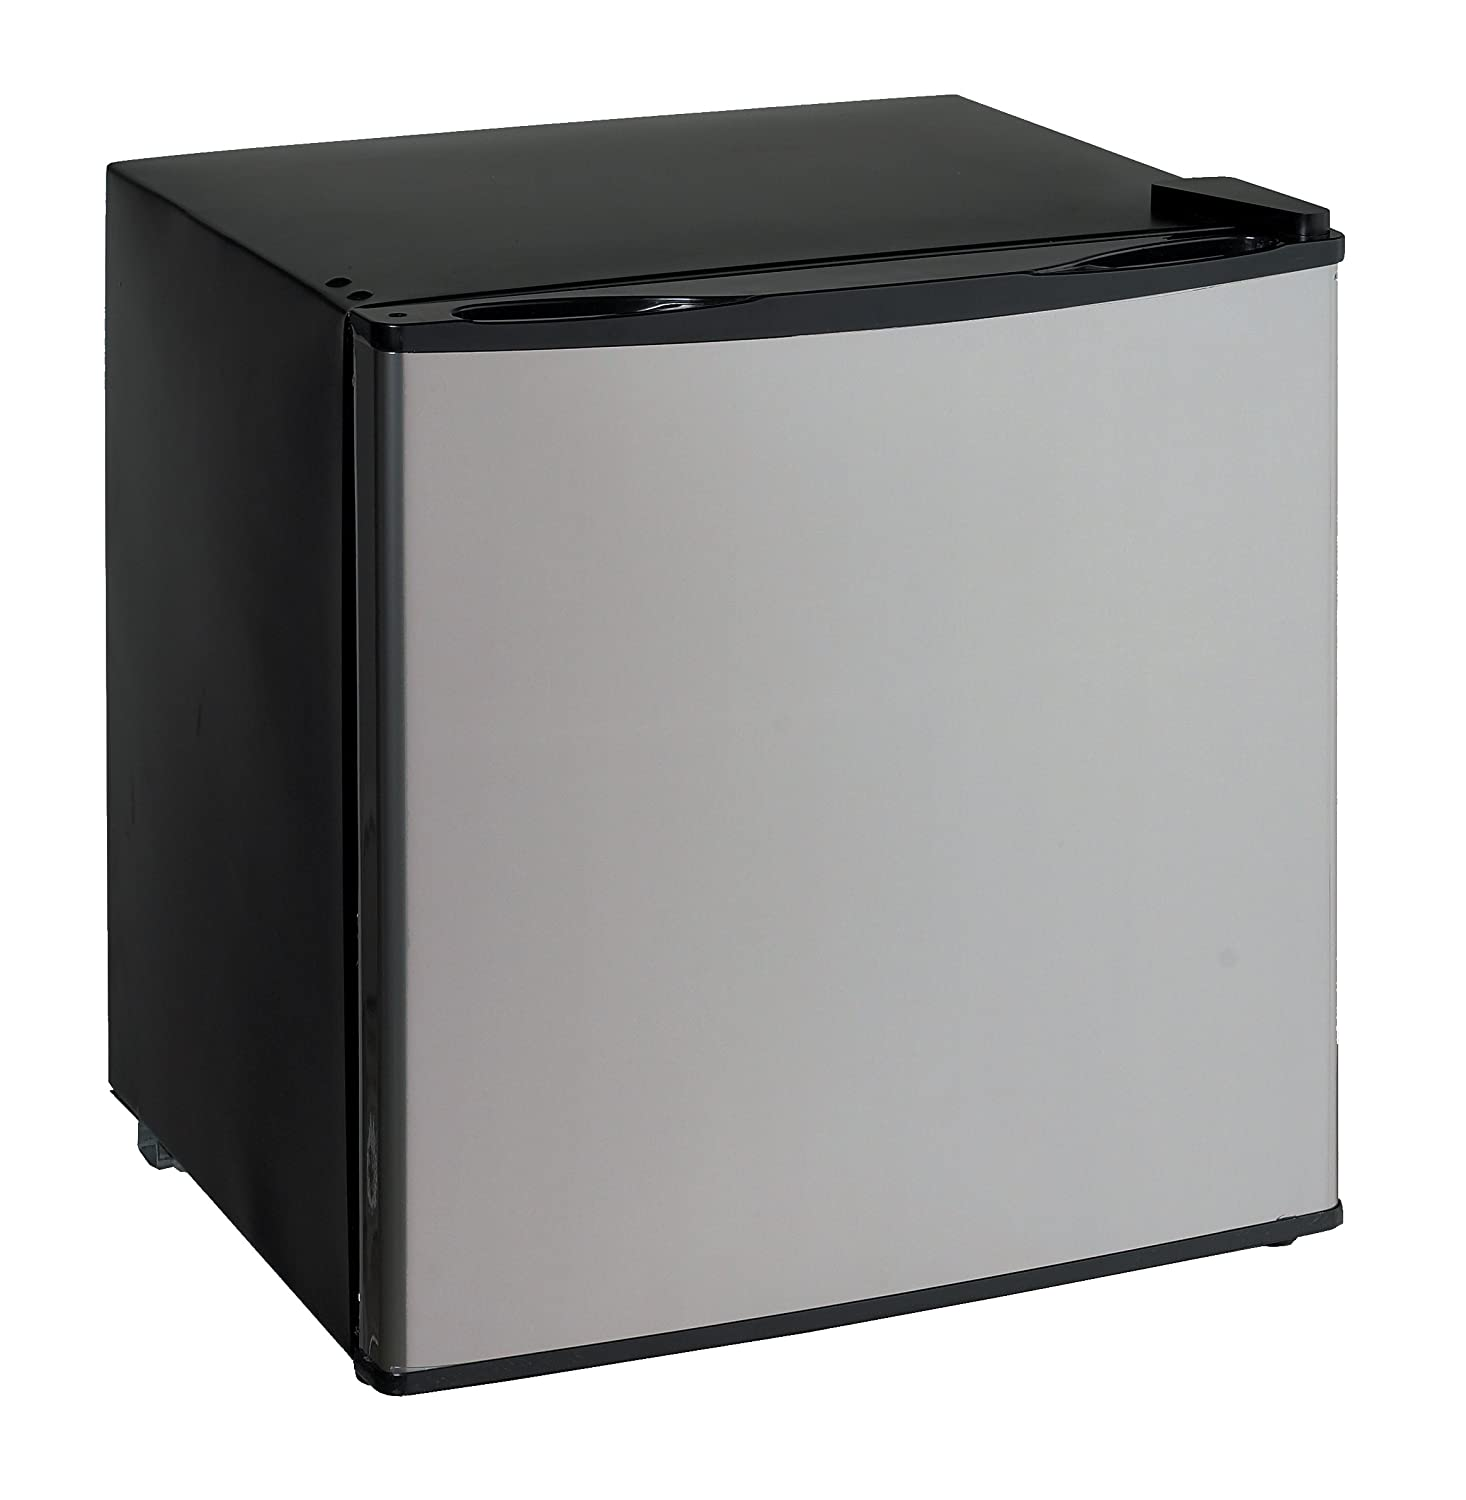 Avanti VFR14PS-IS Dual Switchable Refrigerator/Freezer, 1.4 Cubic Feet EDI NW - Kitchen